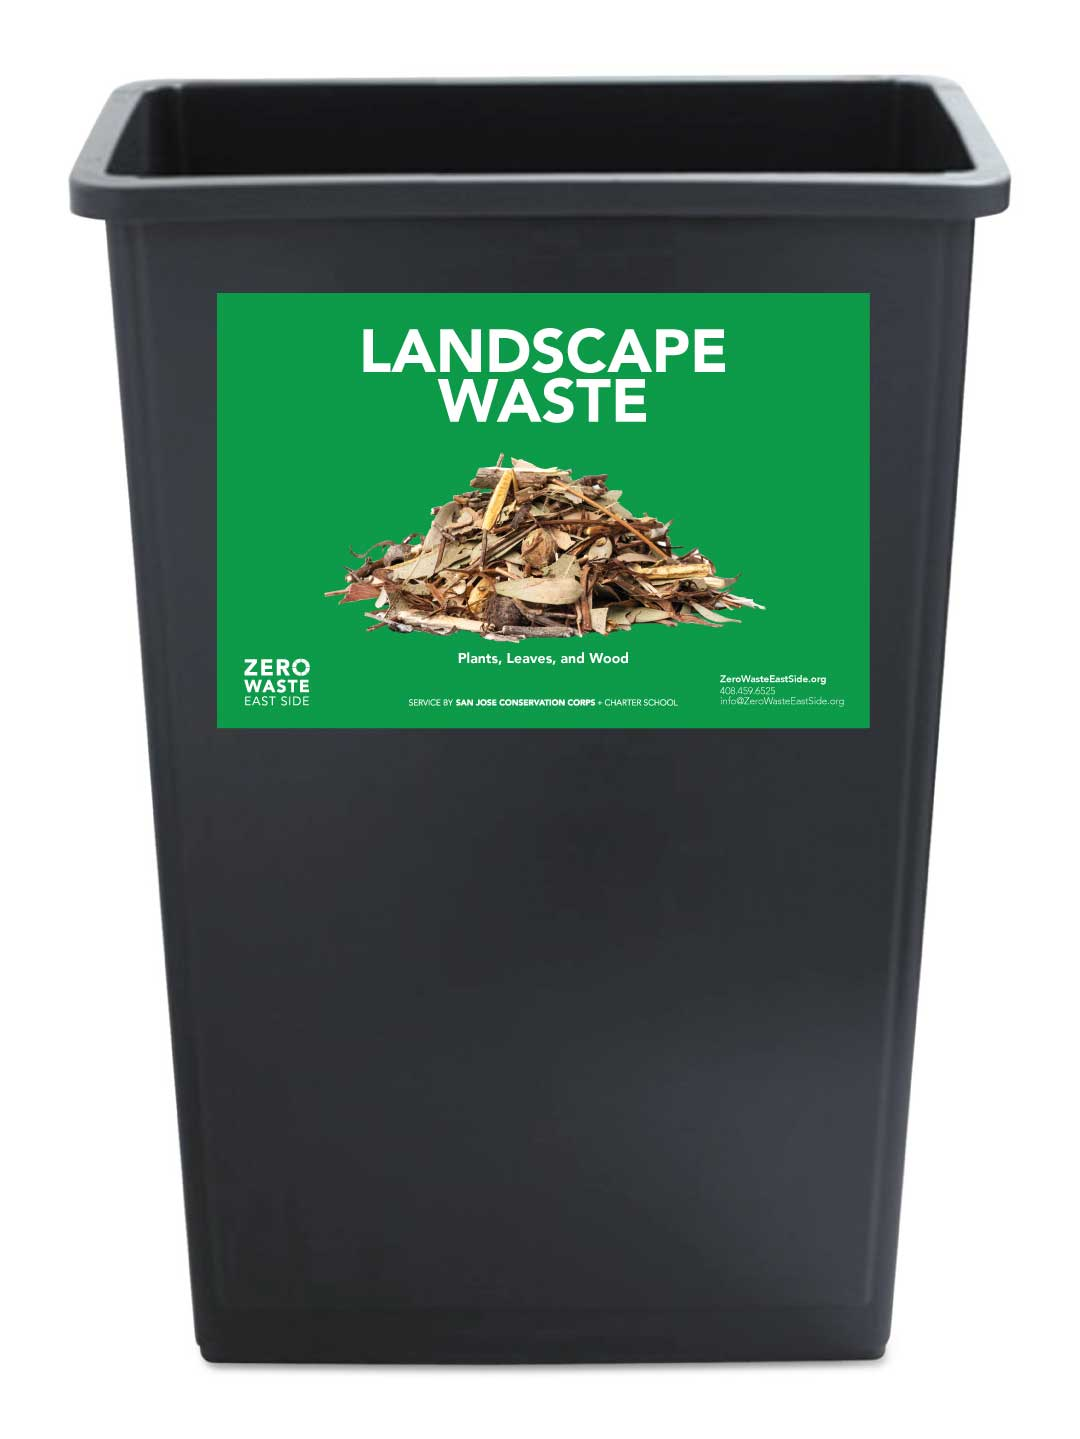 Receptacle Label for Landscape Waste